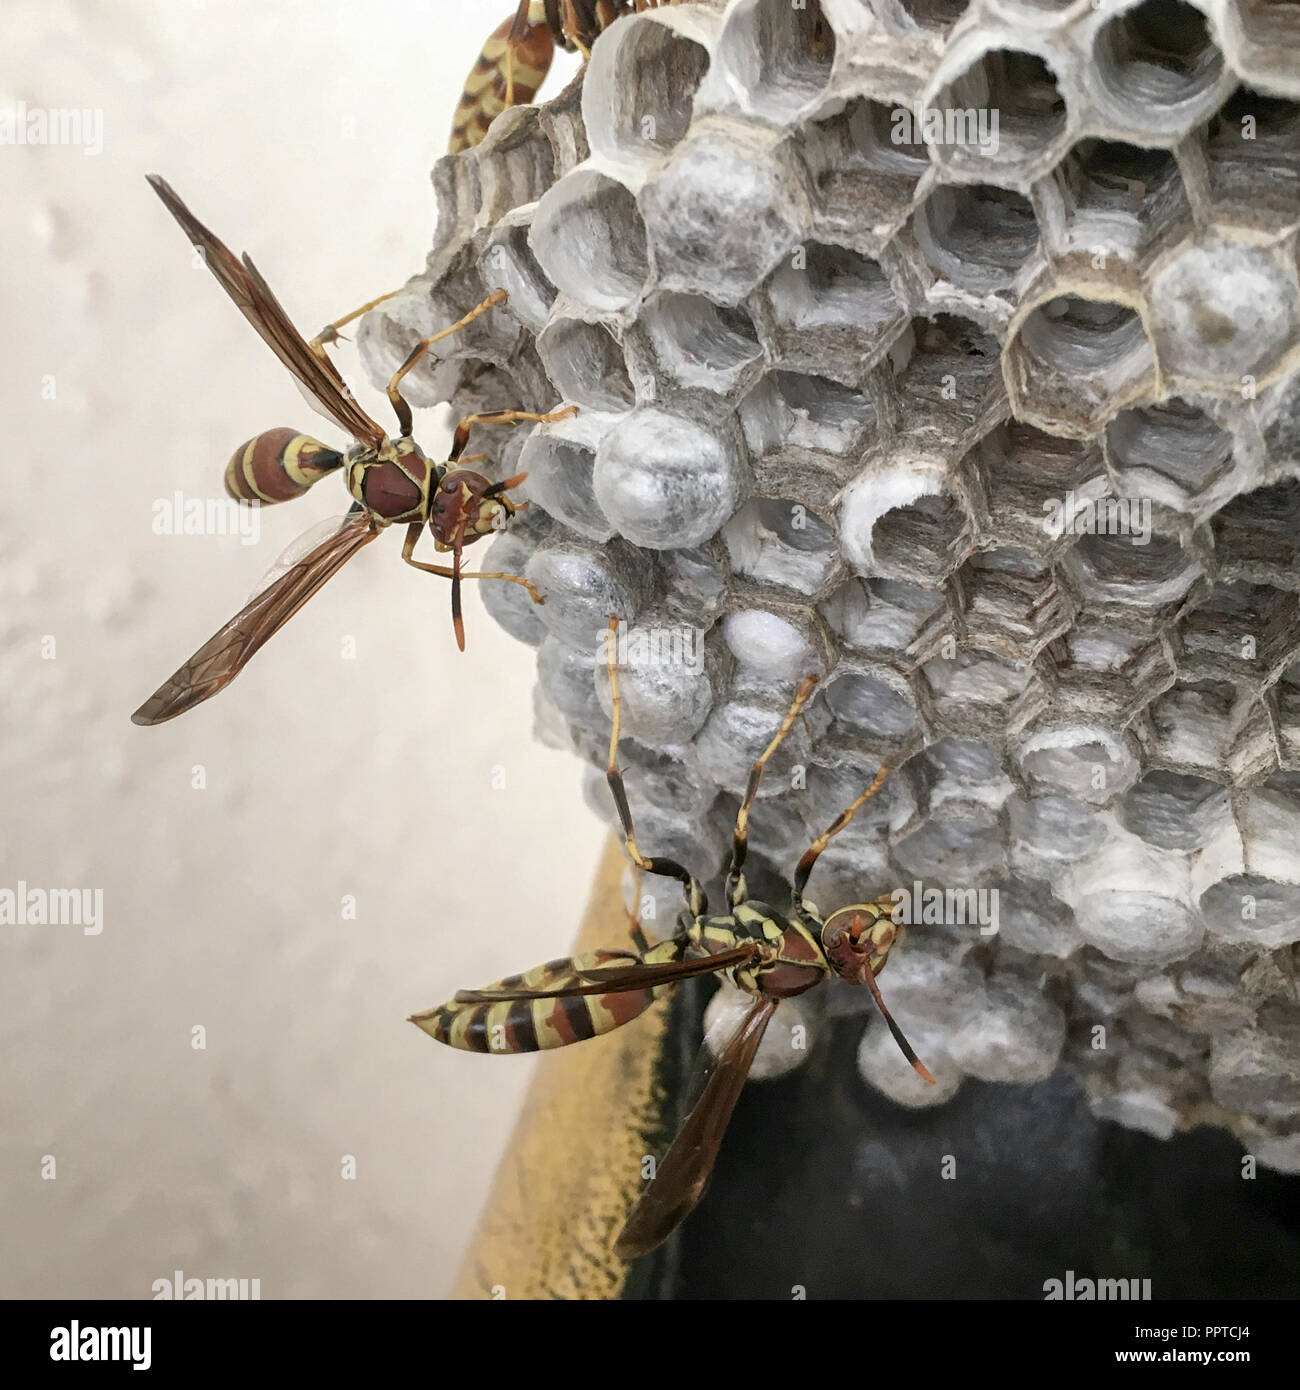 Wasps tending to a nest set up under a carport in West Texas - Stock Image